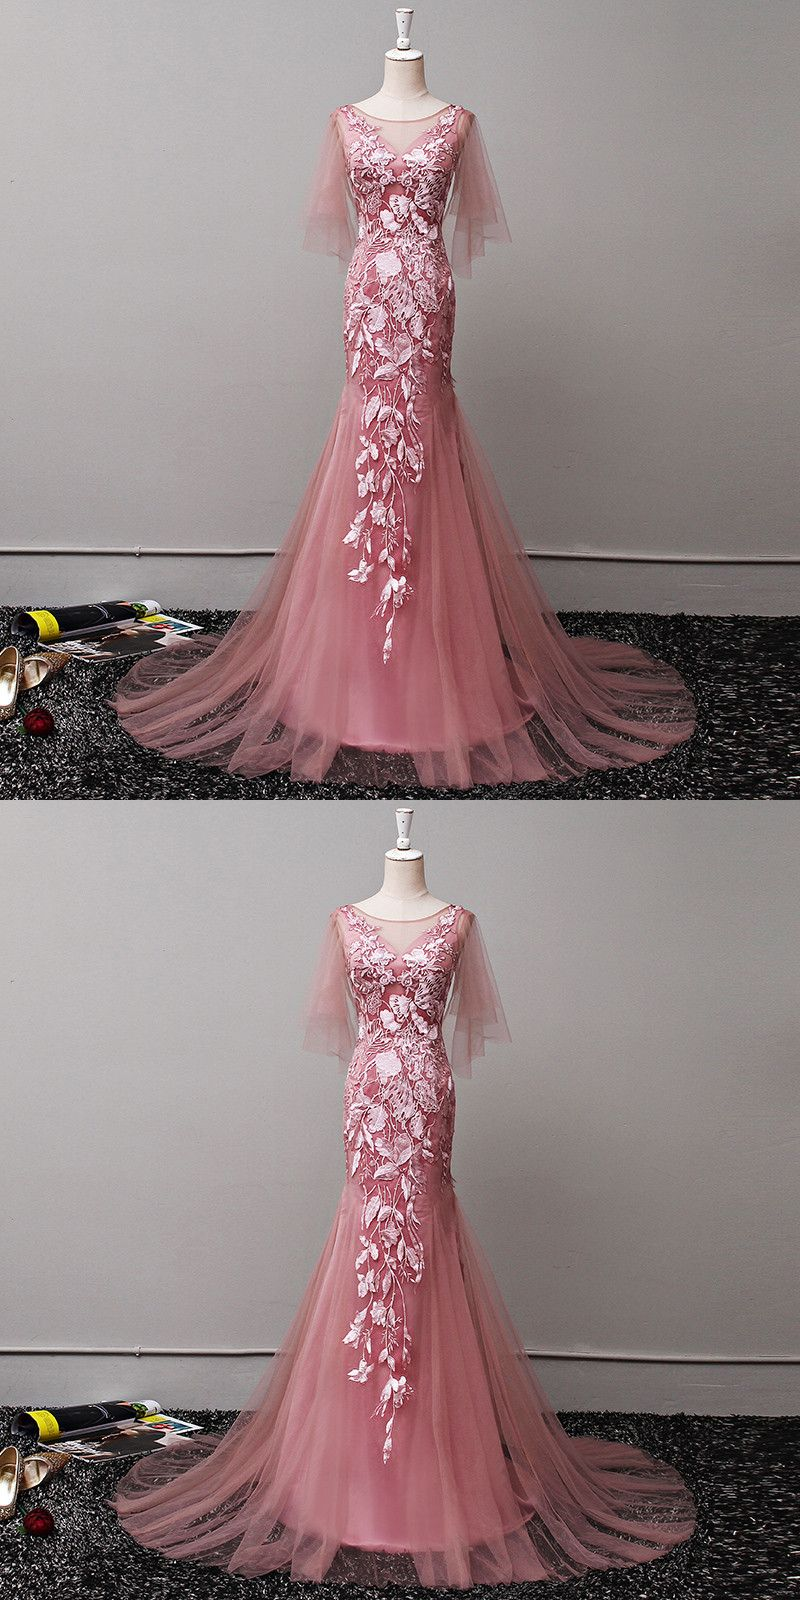 Cheap prom dressevening gownssimple prom dresselegant evening